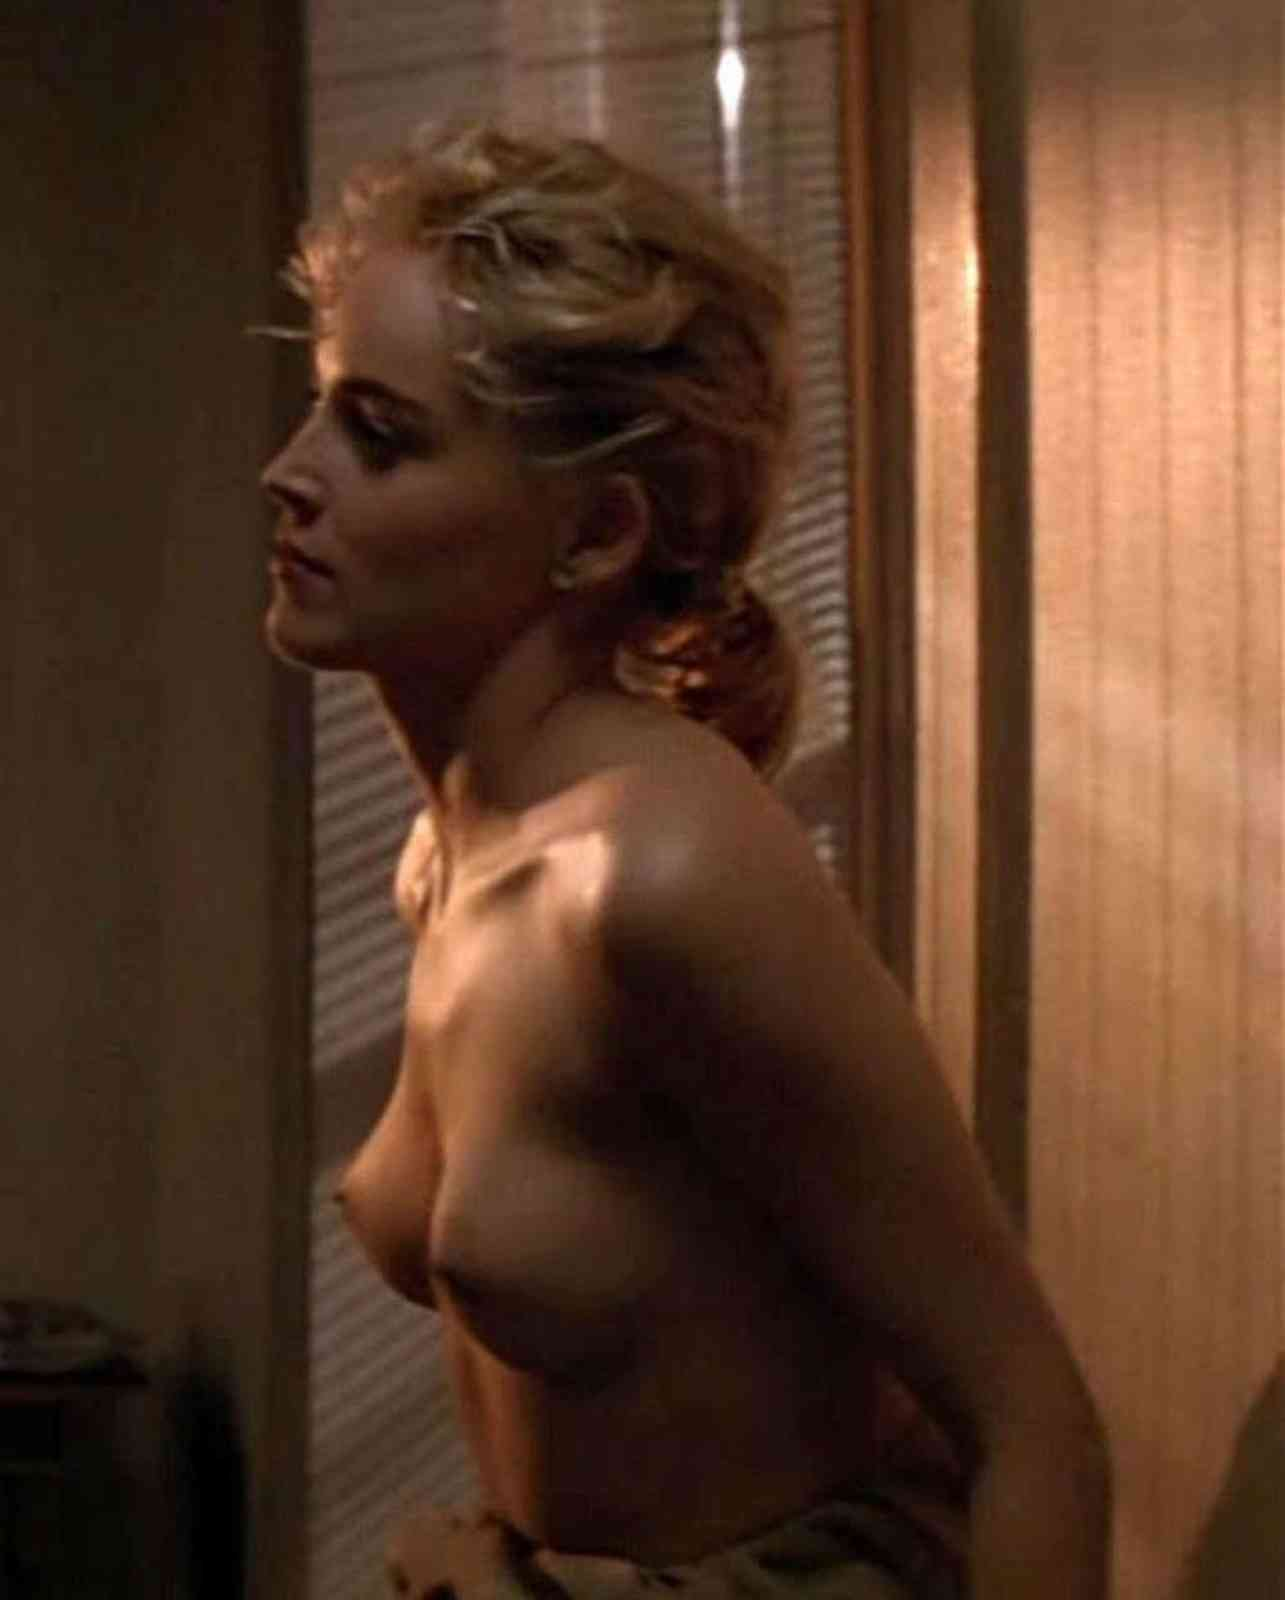 Criticism Sharon stone sexy young advise you